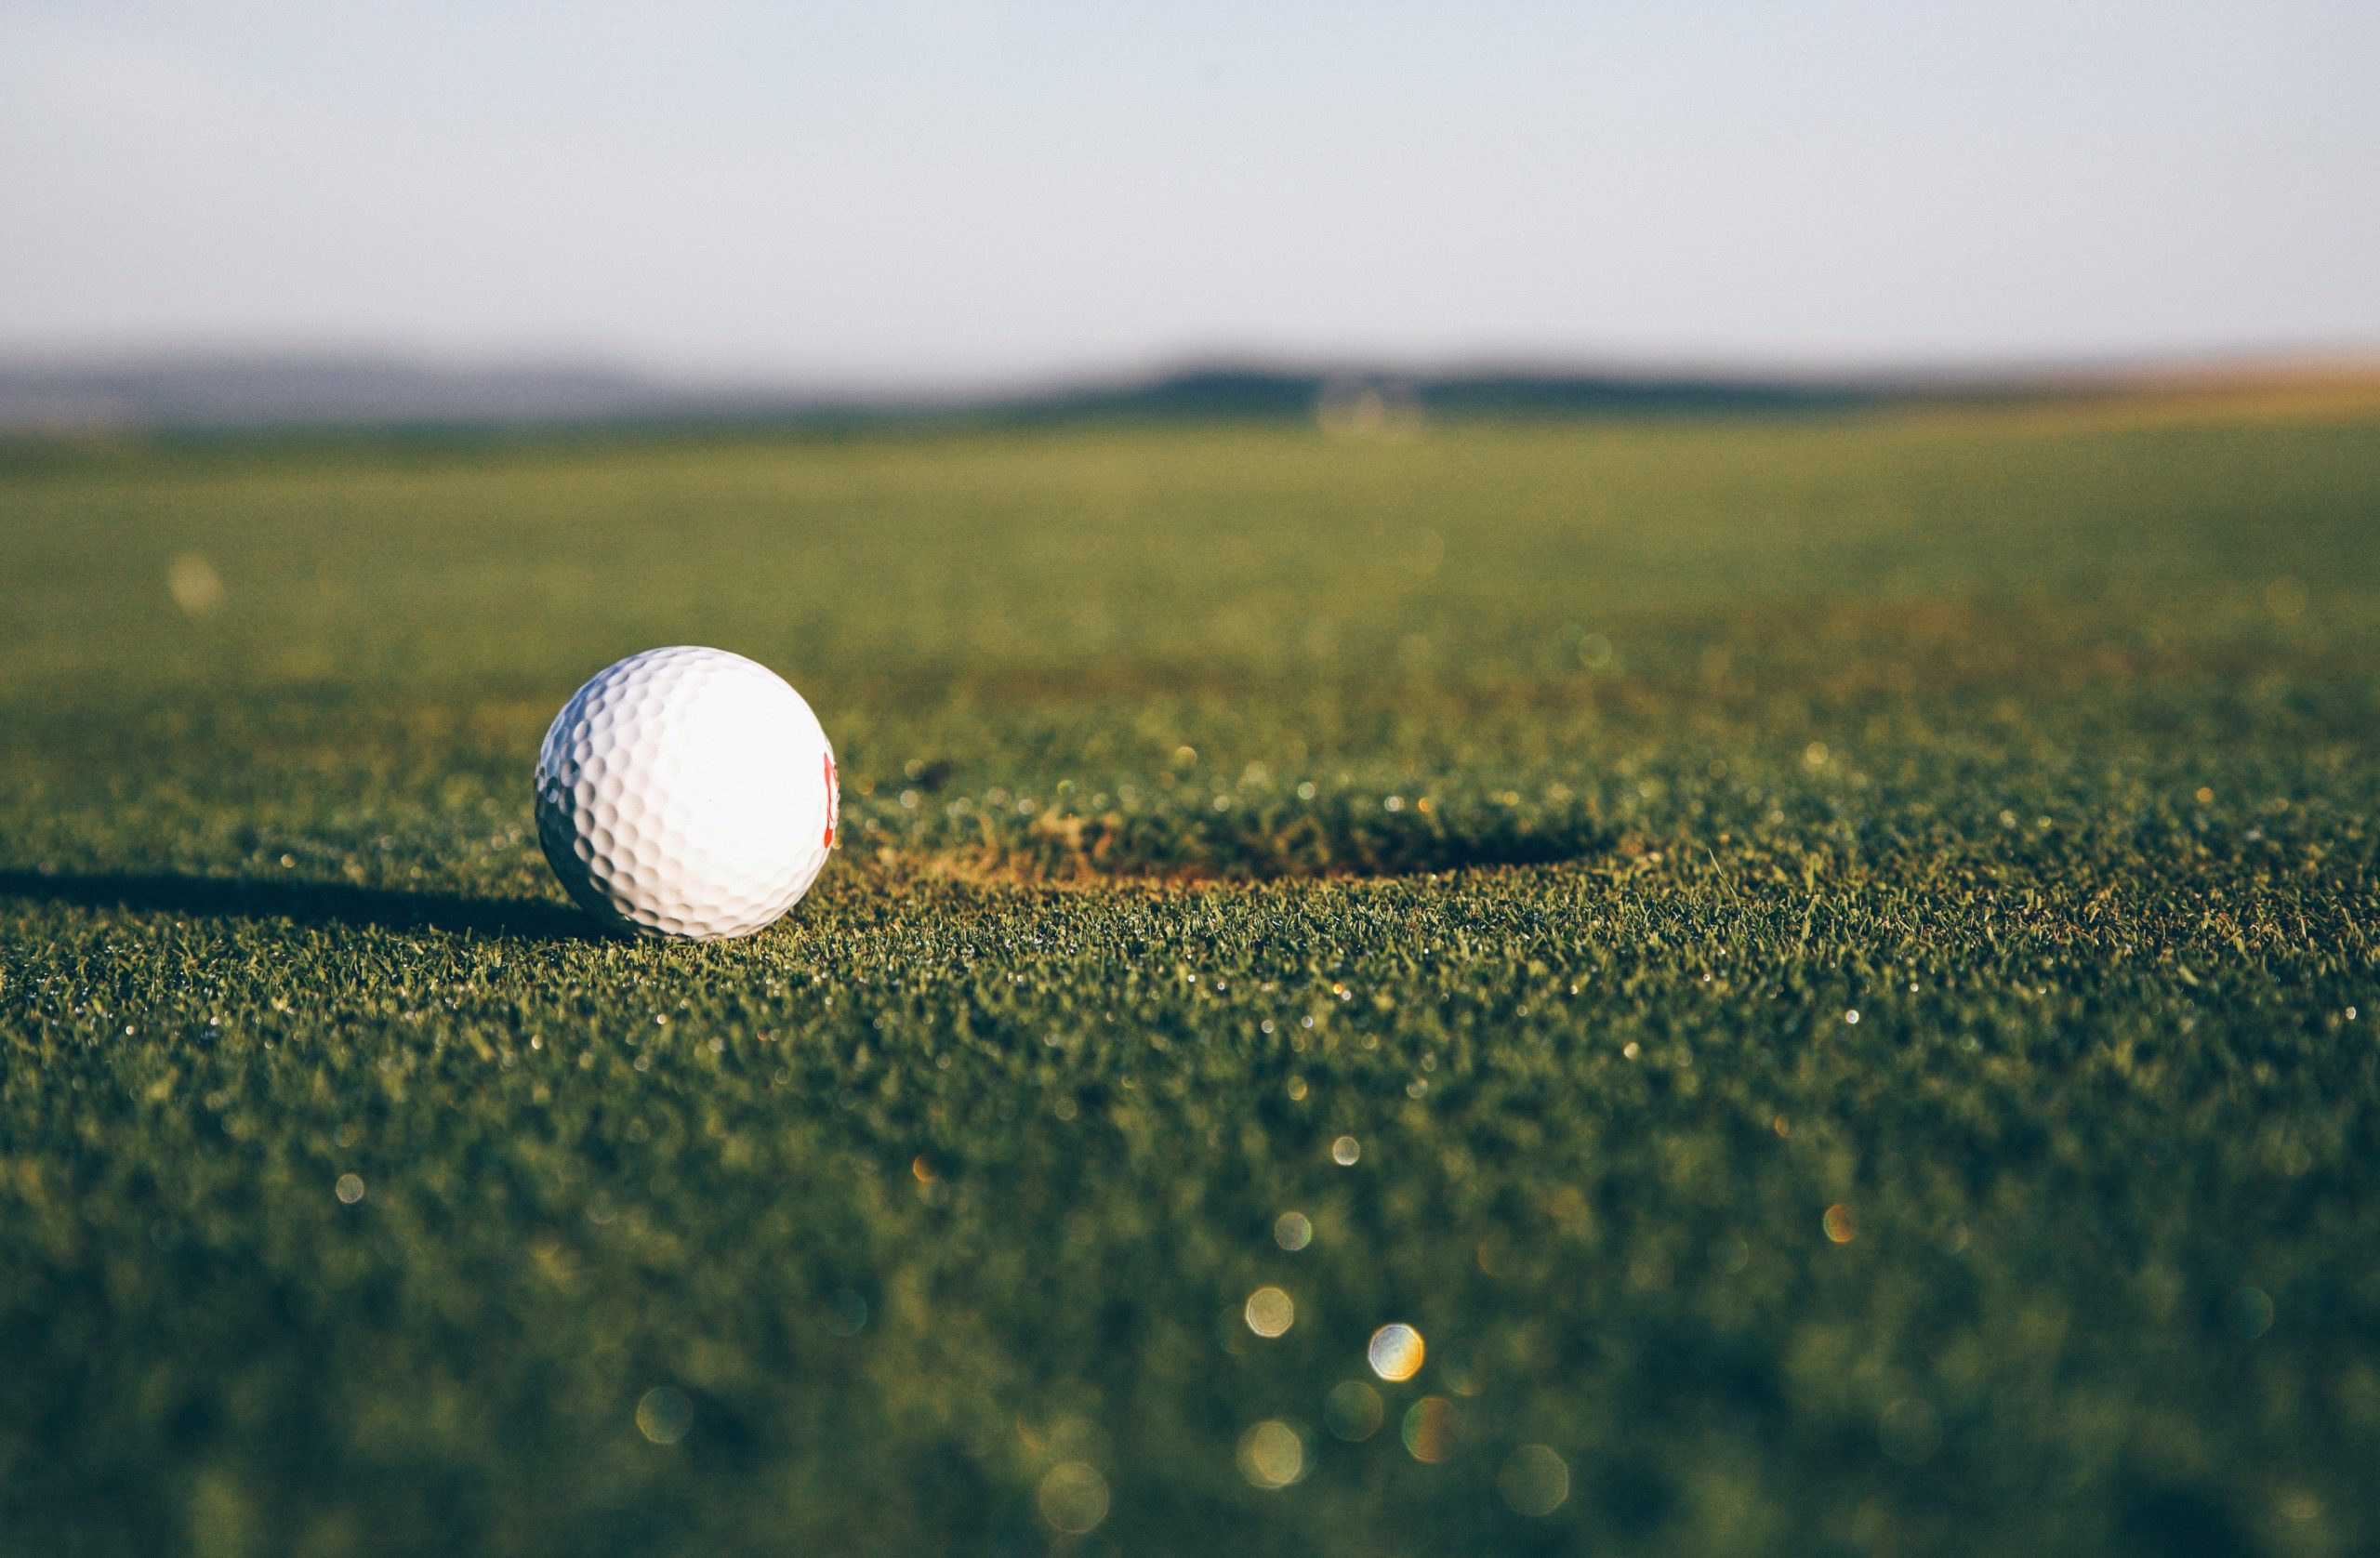 How LA Family Housing Safely Ran a Charity Golf Tournament in the Midst of COVID-19